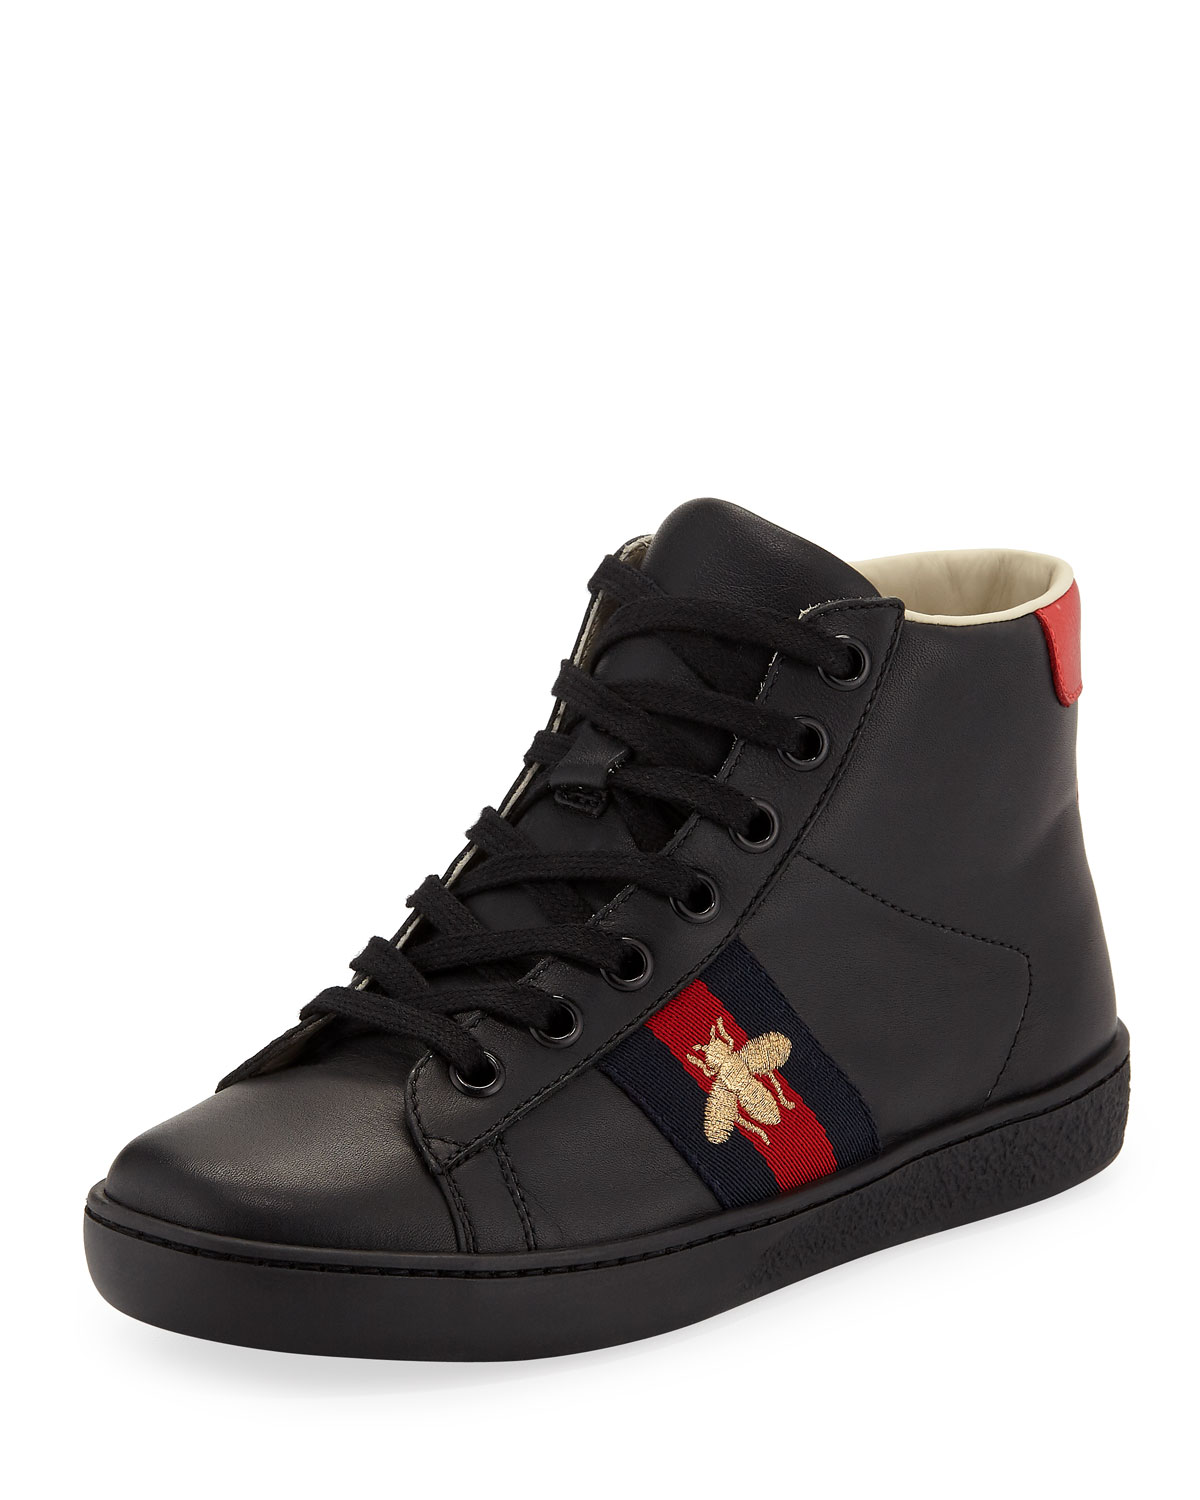 7b1422ca9dd Gucci New Ace Leather High-Top Sneakers